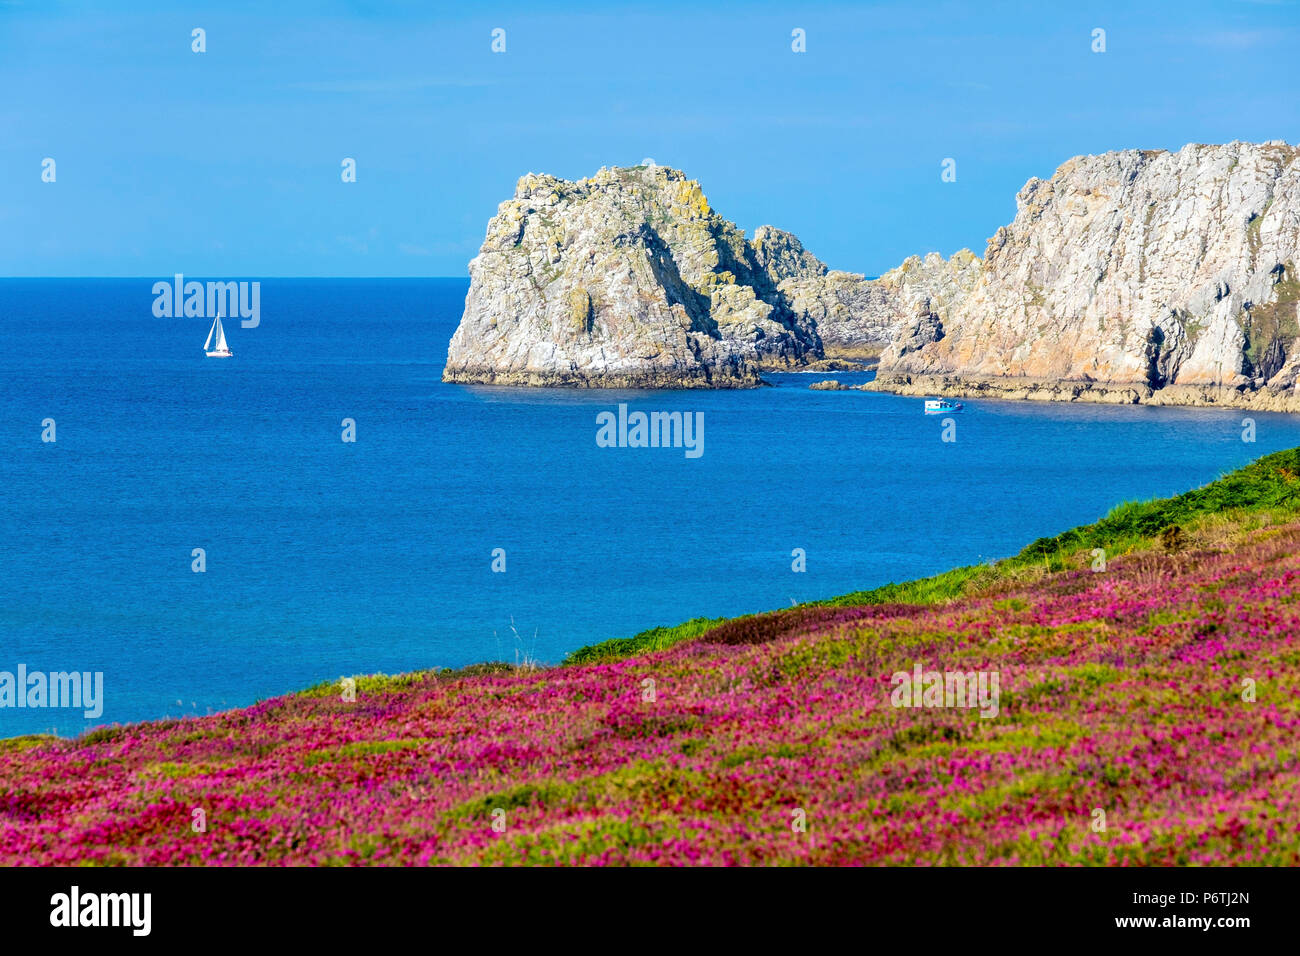 France, Brittany (Bretagne), Finistere department, Camaret-sur-Mer. Pointe du Pen-Hir on the Presqu'ile de Crozon, Parc naturel regional d'Armorique. - Stock Image